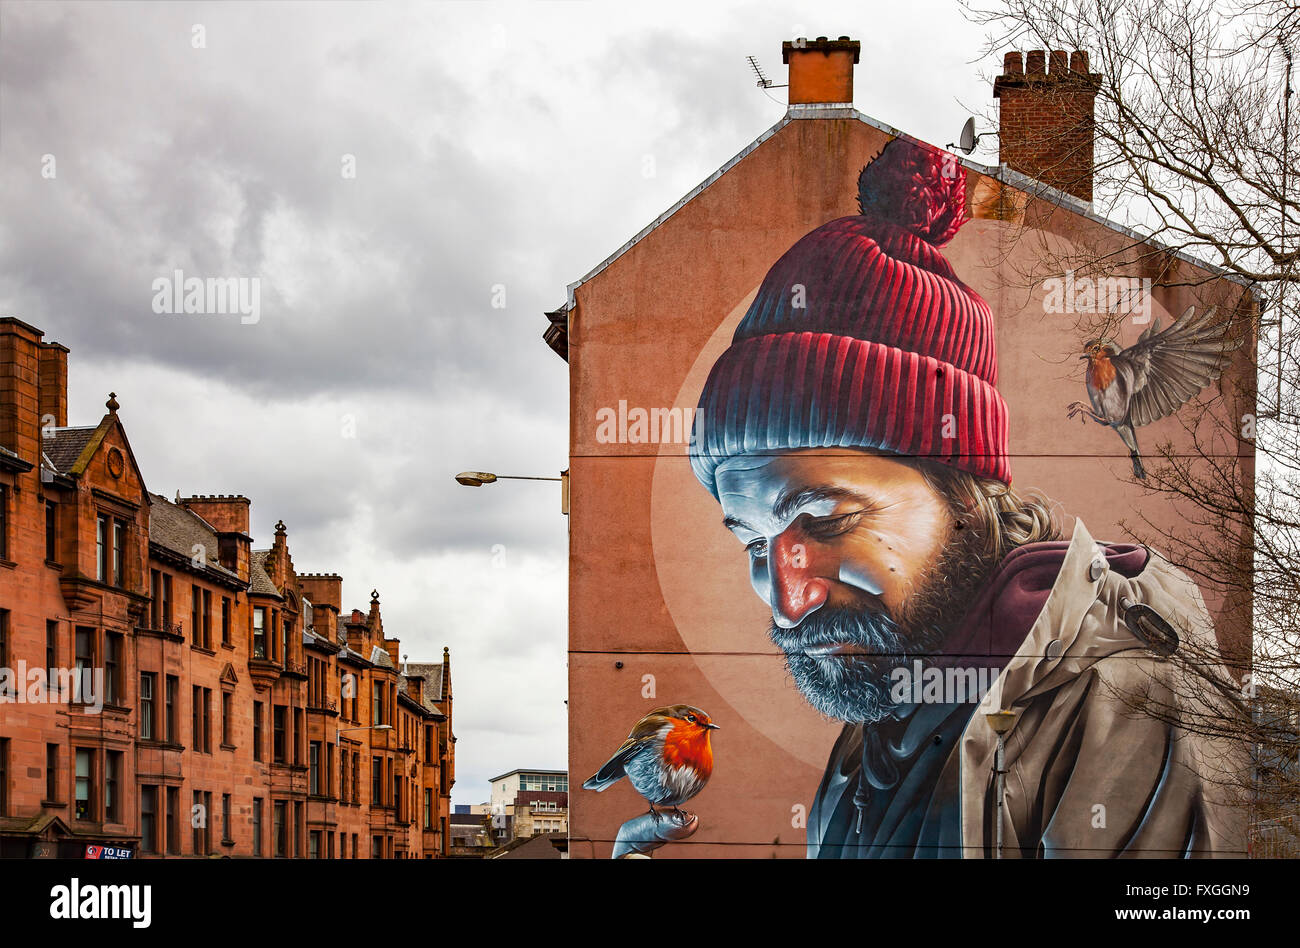 GLASGOW APRIL 02, 2016; Mural painting of a man with birds, on wall in central Galsgow, Scotland. - Stock Image